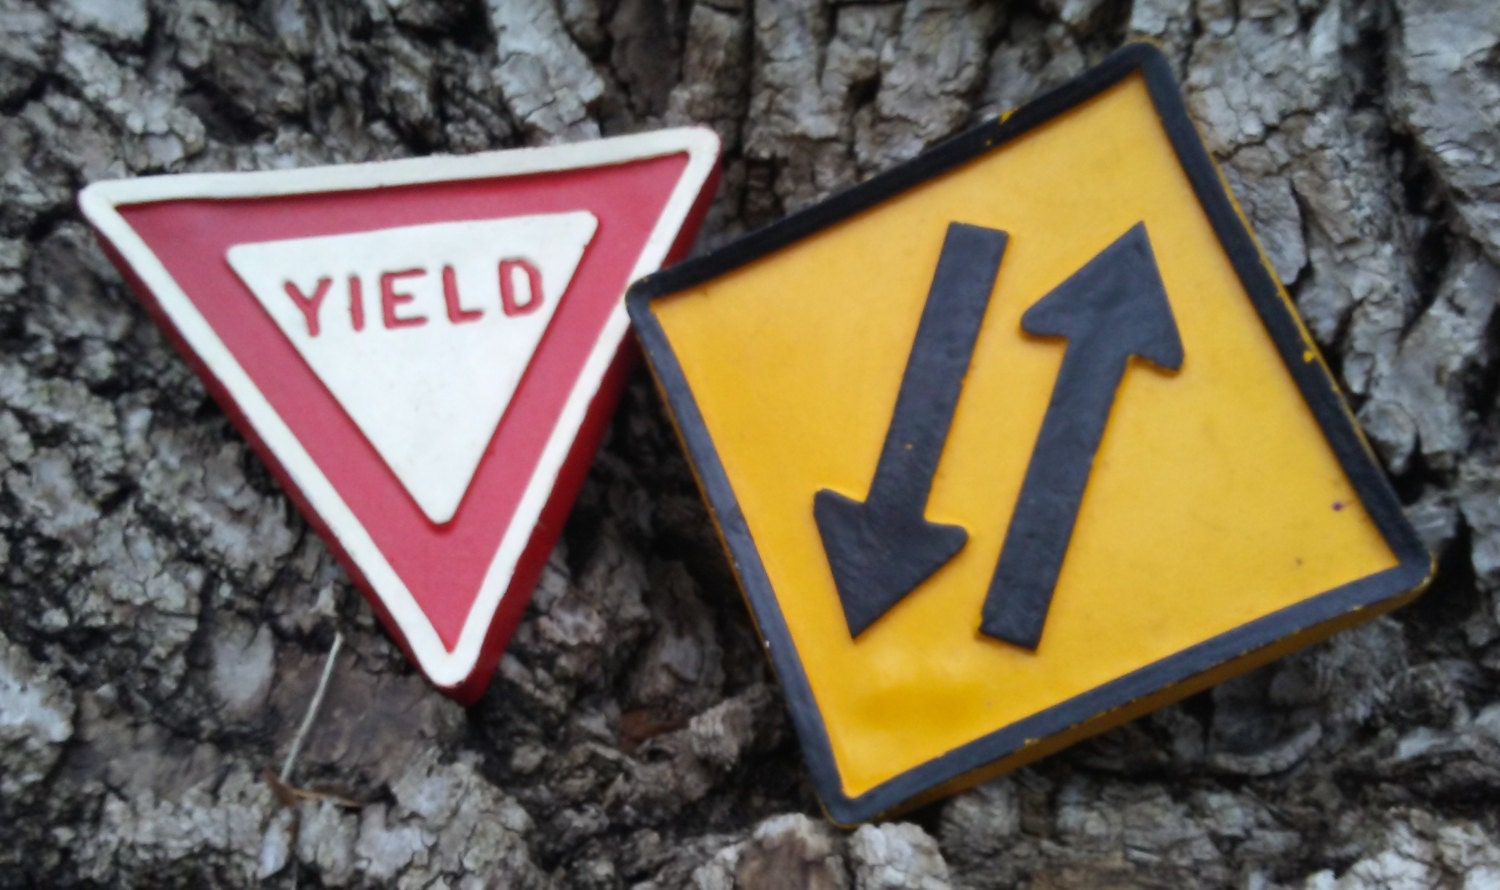 Traffic signs Vintage small Yield 2 way Traffic road street